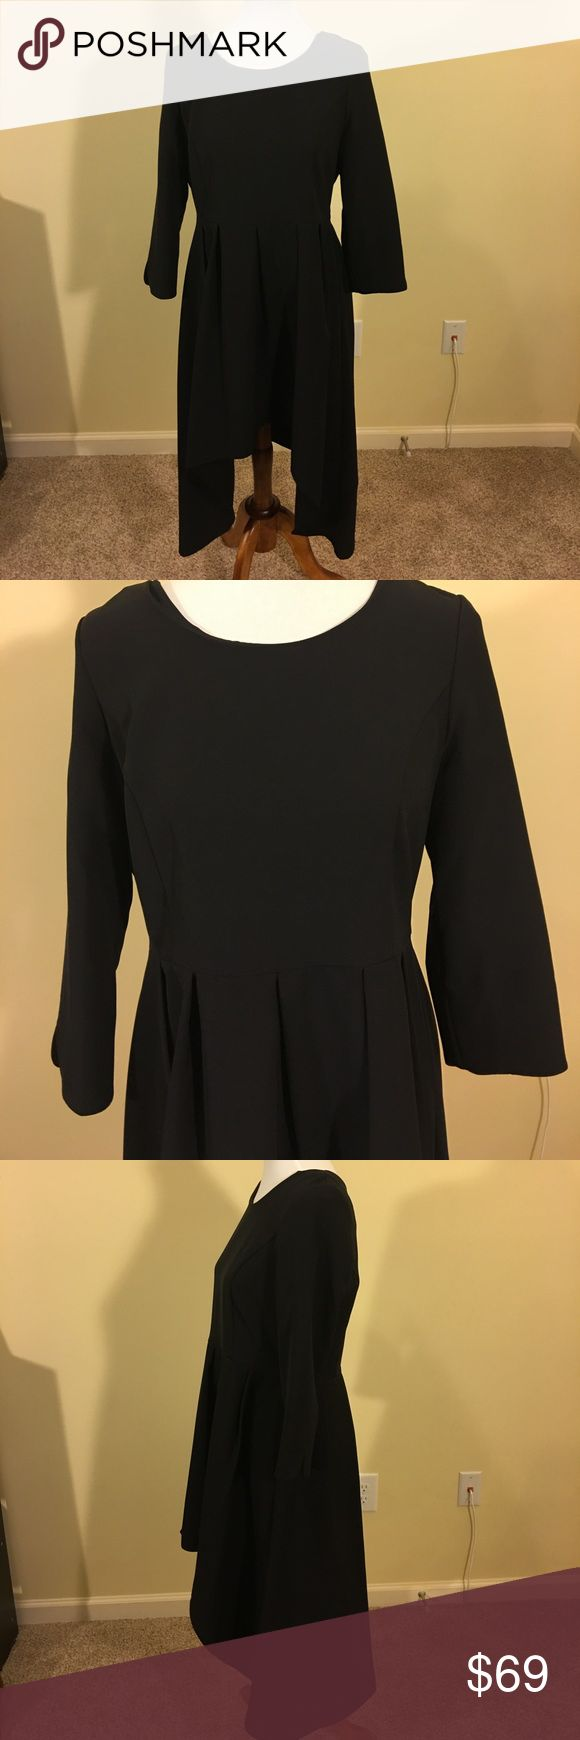 Neiman Marcus Hi/Lo Black Dress Size L Neiman Marcus Hi/Lo Black Dress Size L, lovingly worn, great condition- good for so many occasions. Neiman Marcus Dresses Long Sleeve